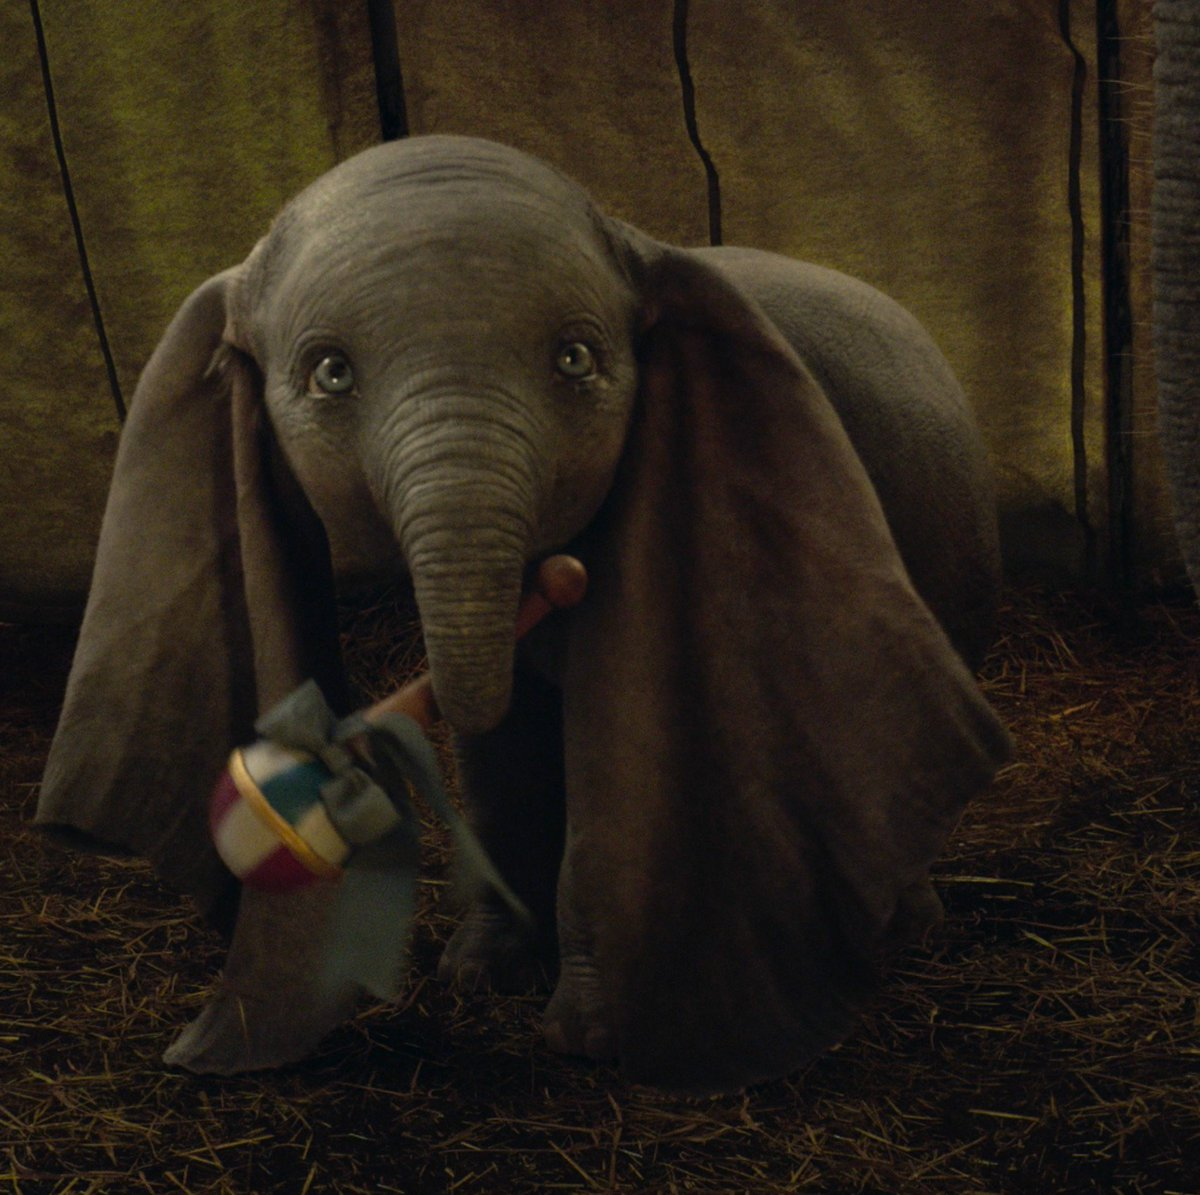 RT @Dumbo: This Friday, the Disney legend soars to new heights. #Dumbo https://t.co/uwyTqWcFZN